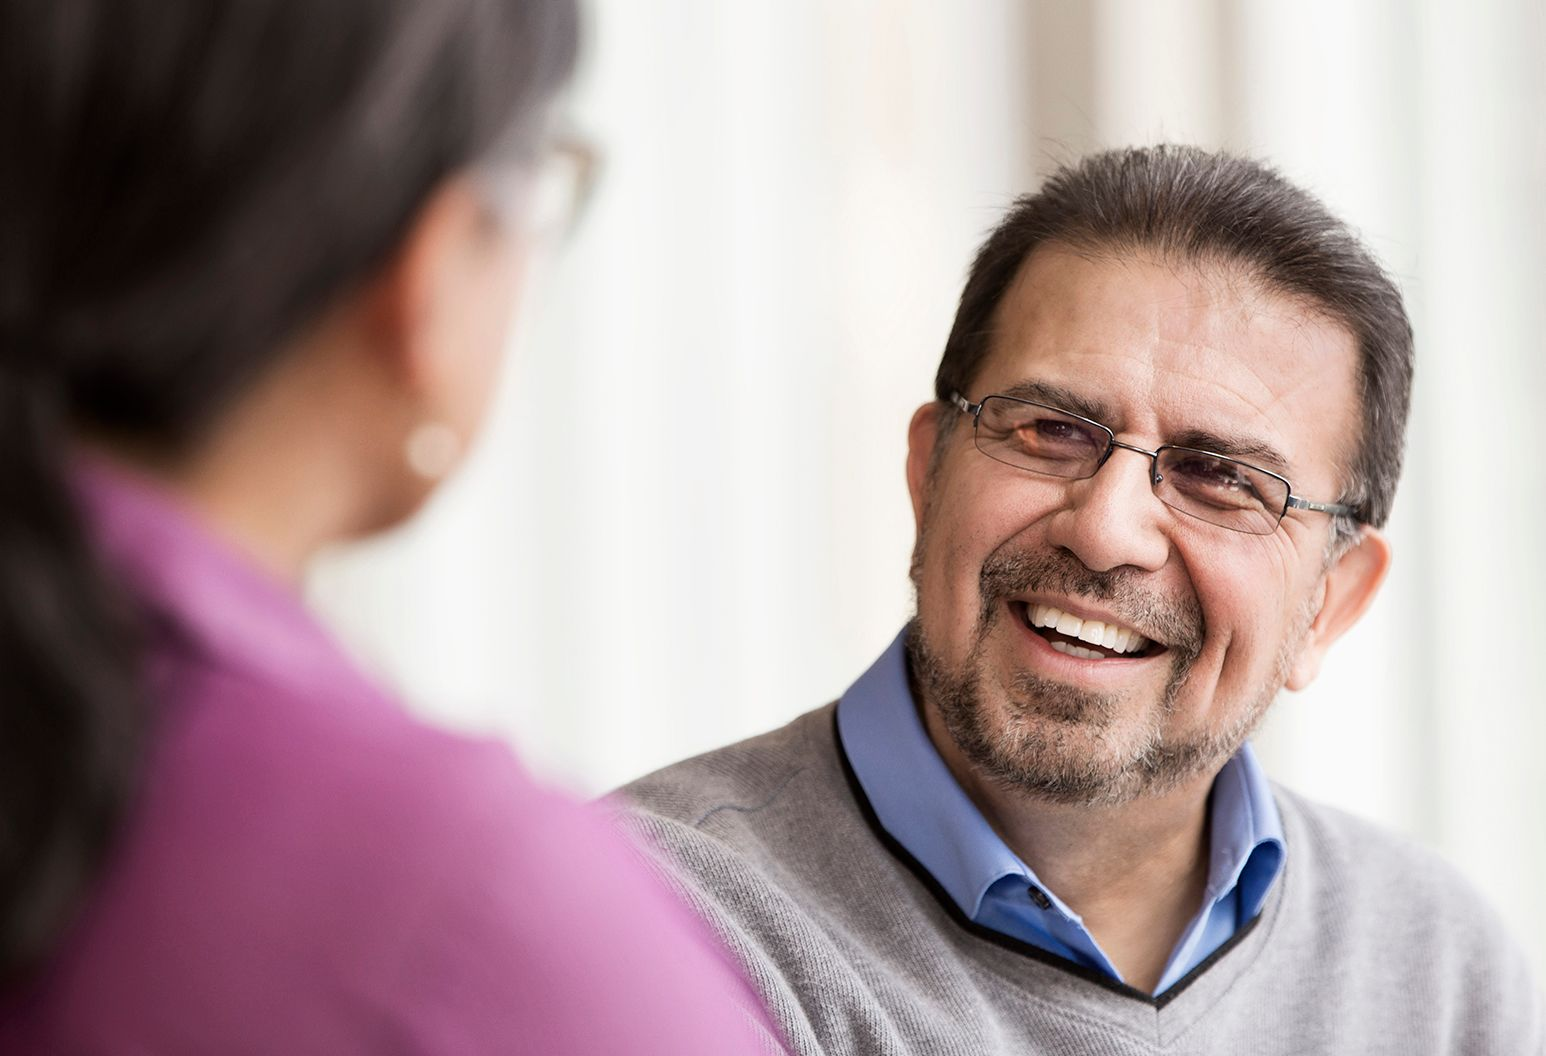 Close up of man talking to a woman in a support group